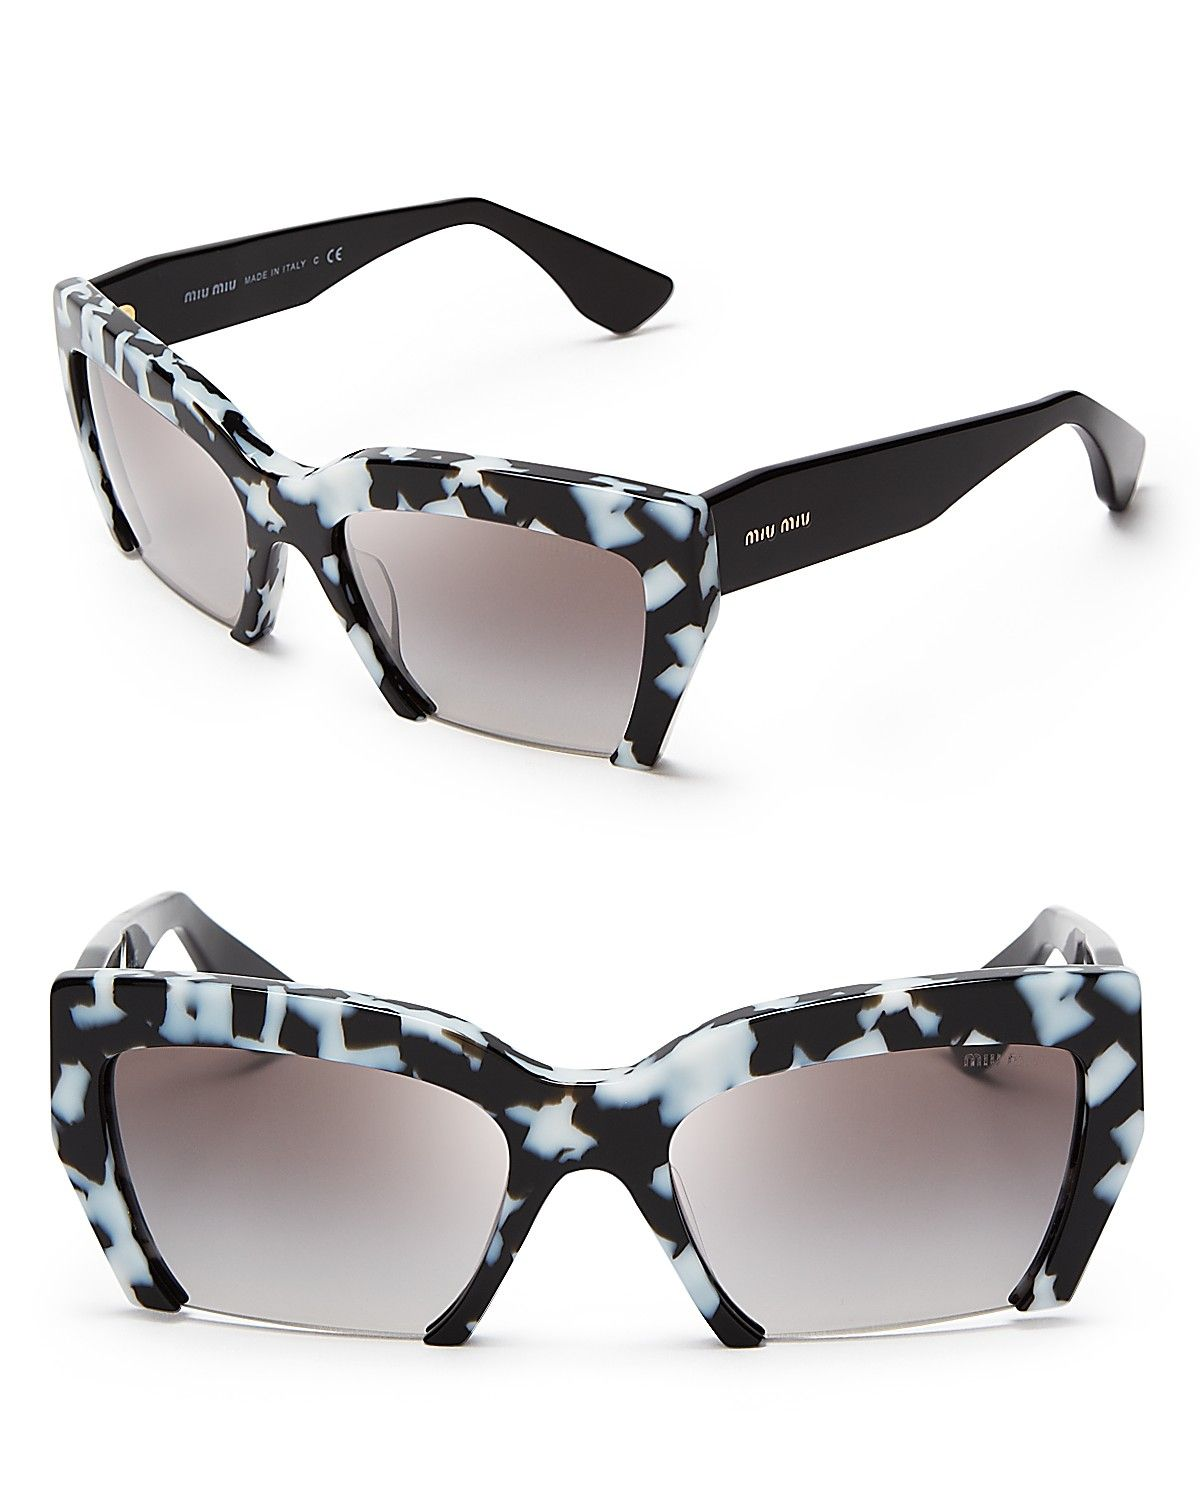 e4ccdb39cefb Miu Miu Semi-Rimless Geometric Sunglasses | Bloomingdale\\'s Winter Typ